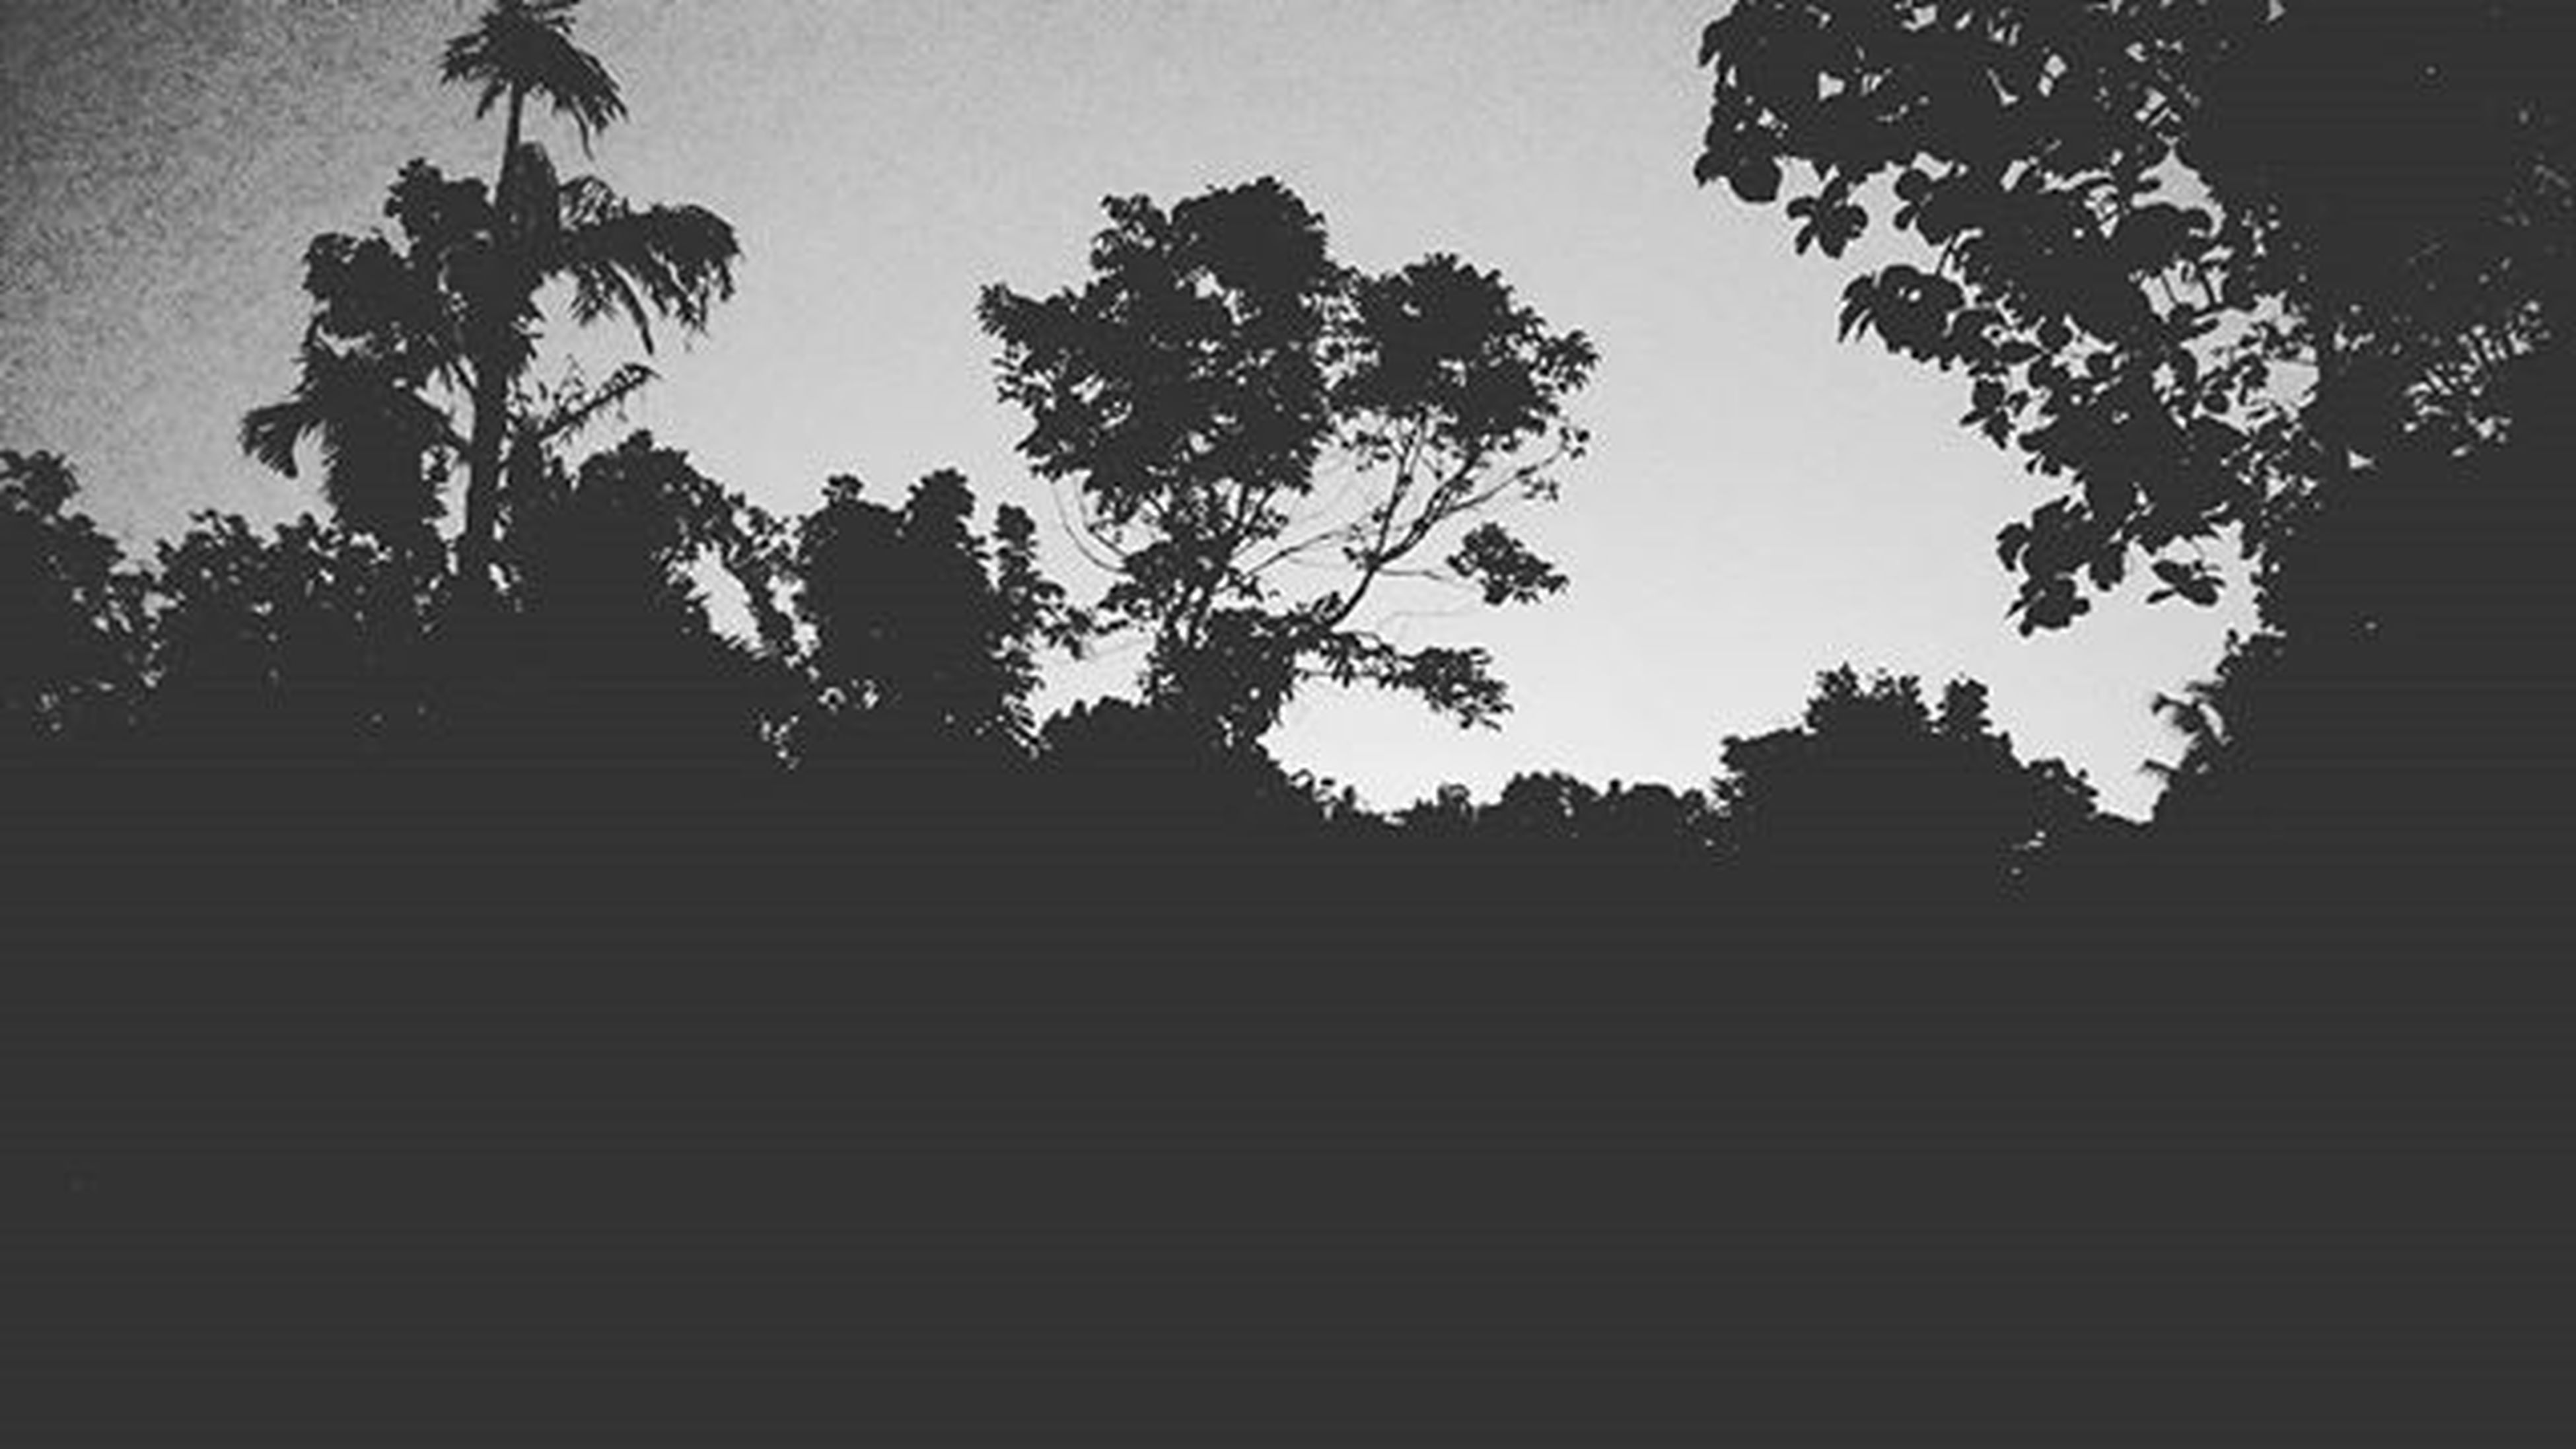 tree, low angle view, built structure, architecture, silhouette, building exterior, sky, clear sky, steps, outdoors, branch, no people, growth, dusk, nature, sunlight, day, sunset, building, copy space